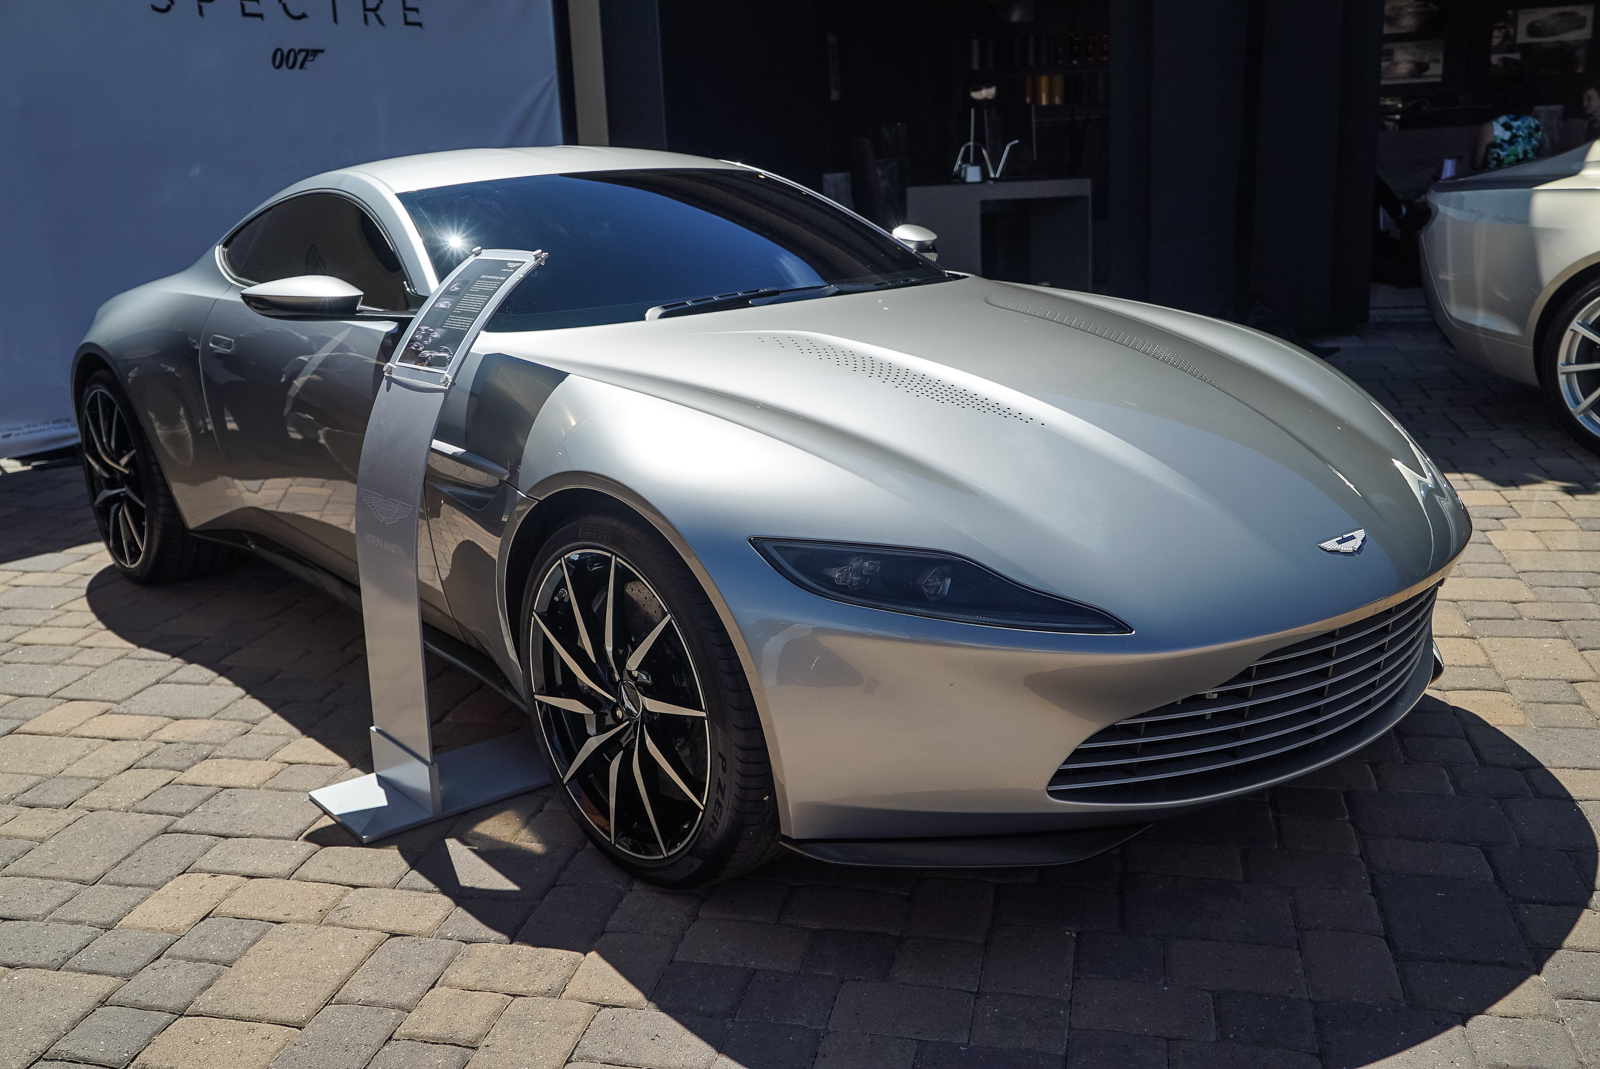 james bond aston martin db10 debuts at pebble beach news. Black Bedroom Furniture Sets. Home Design Ideas